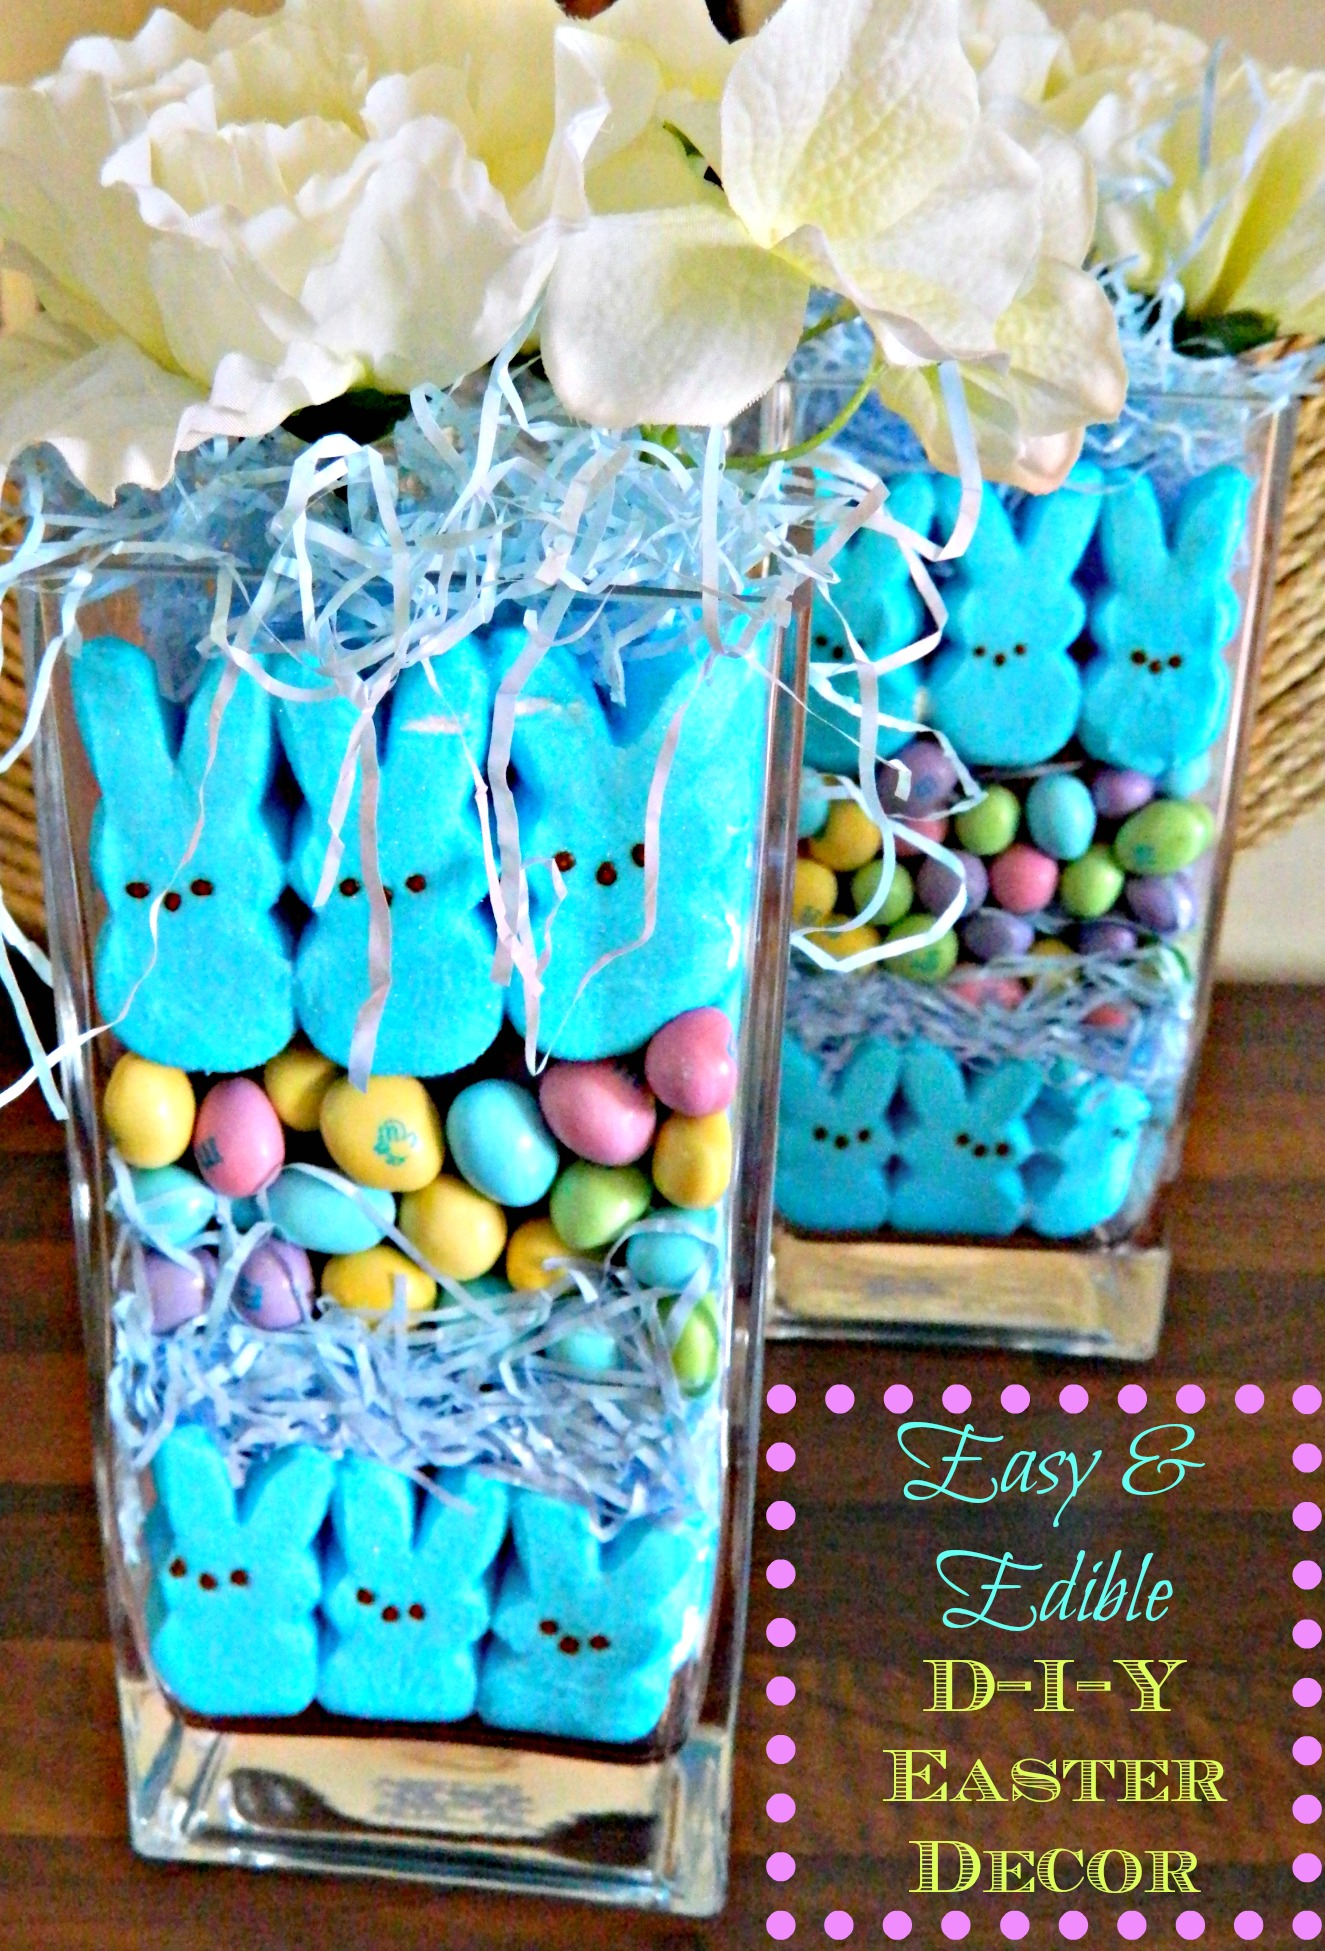 Best Easy D I Y Easter Decorations Finding Silver Linings This Month